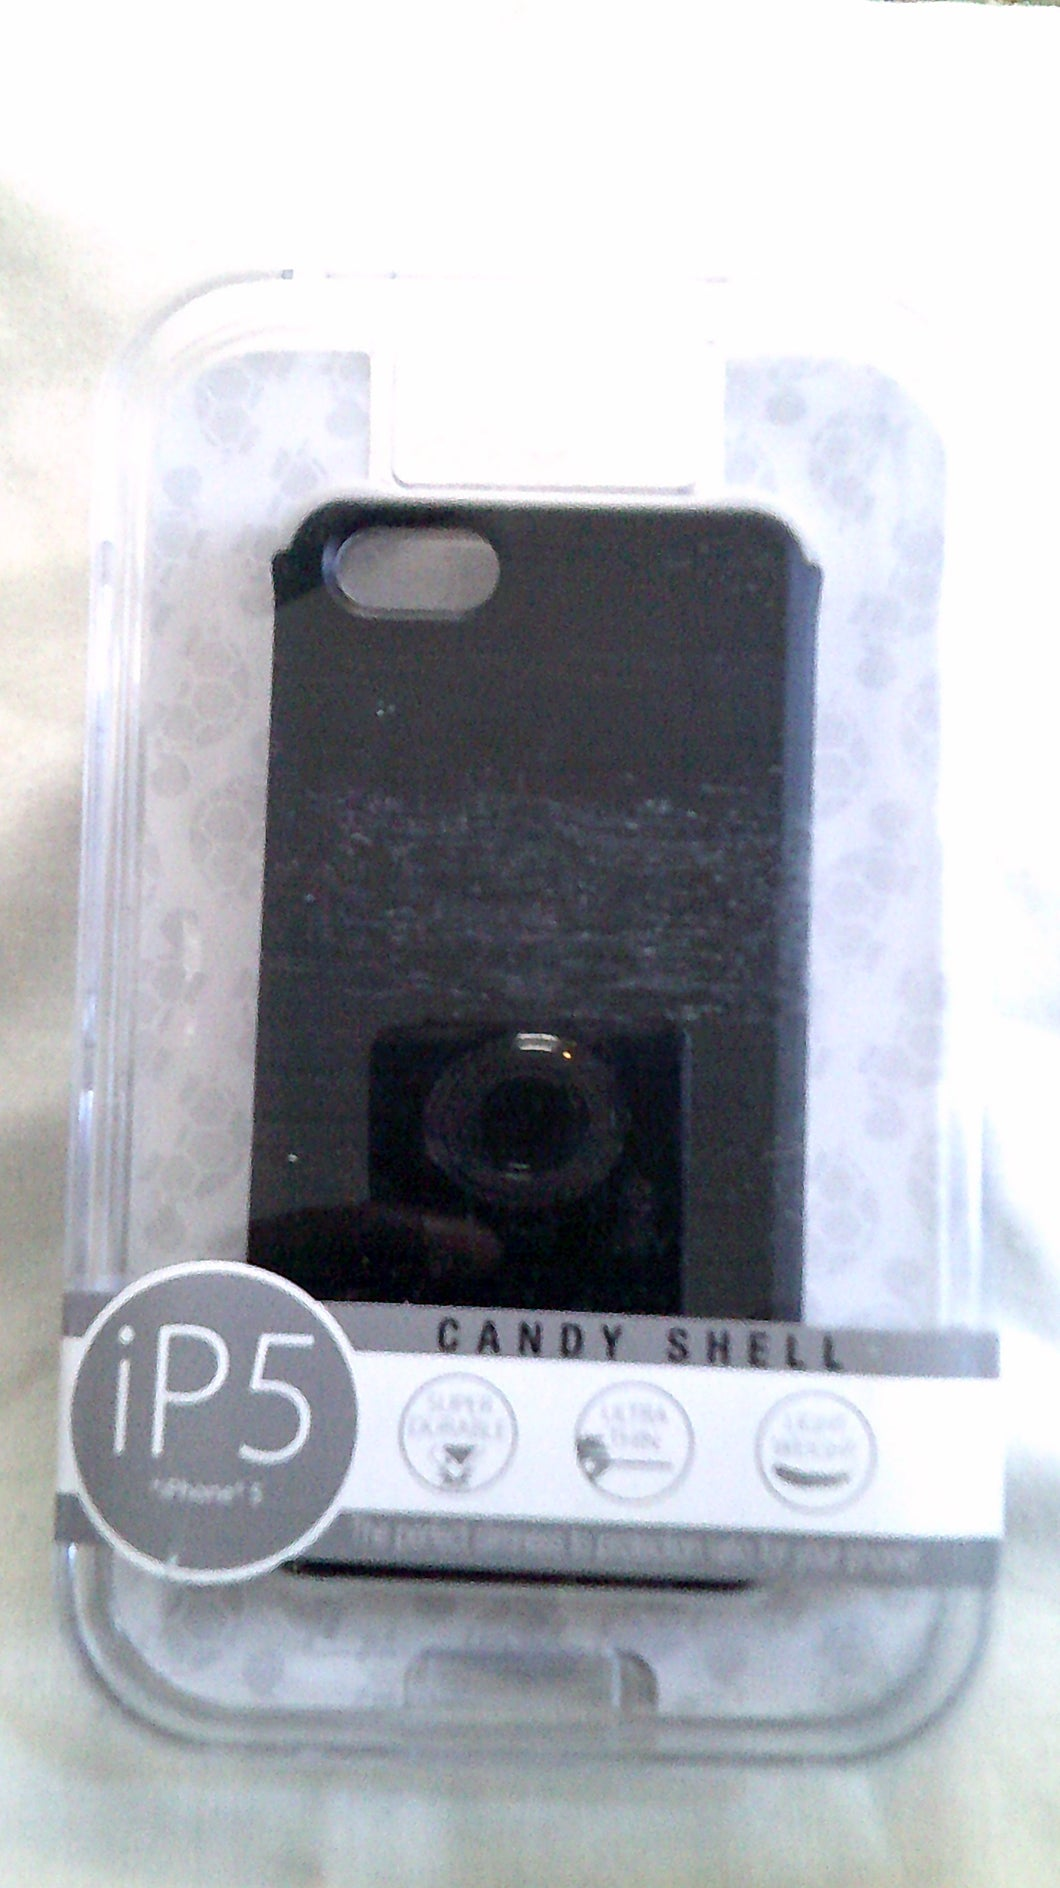 Turtle Box Black/Grey Thin CandyShell Armor for iPhone 5 - New